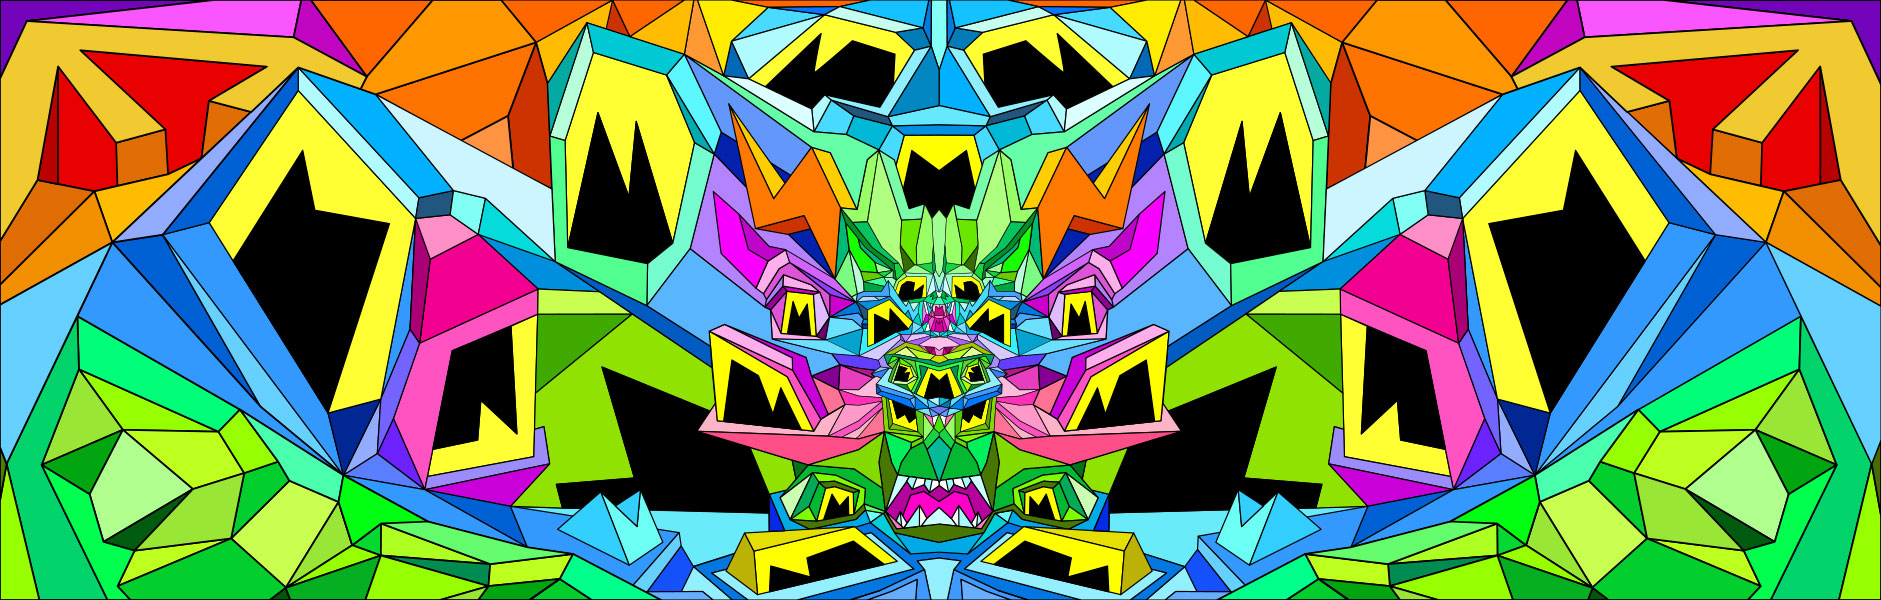 Geometric, colourful art composition with strong left-right symmetry.